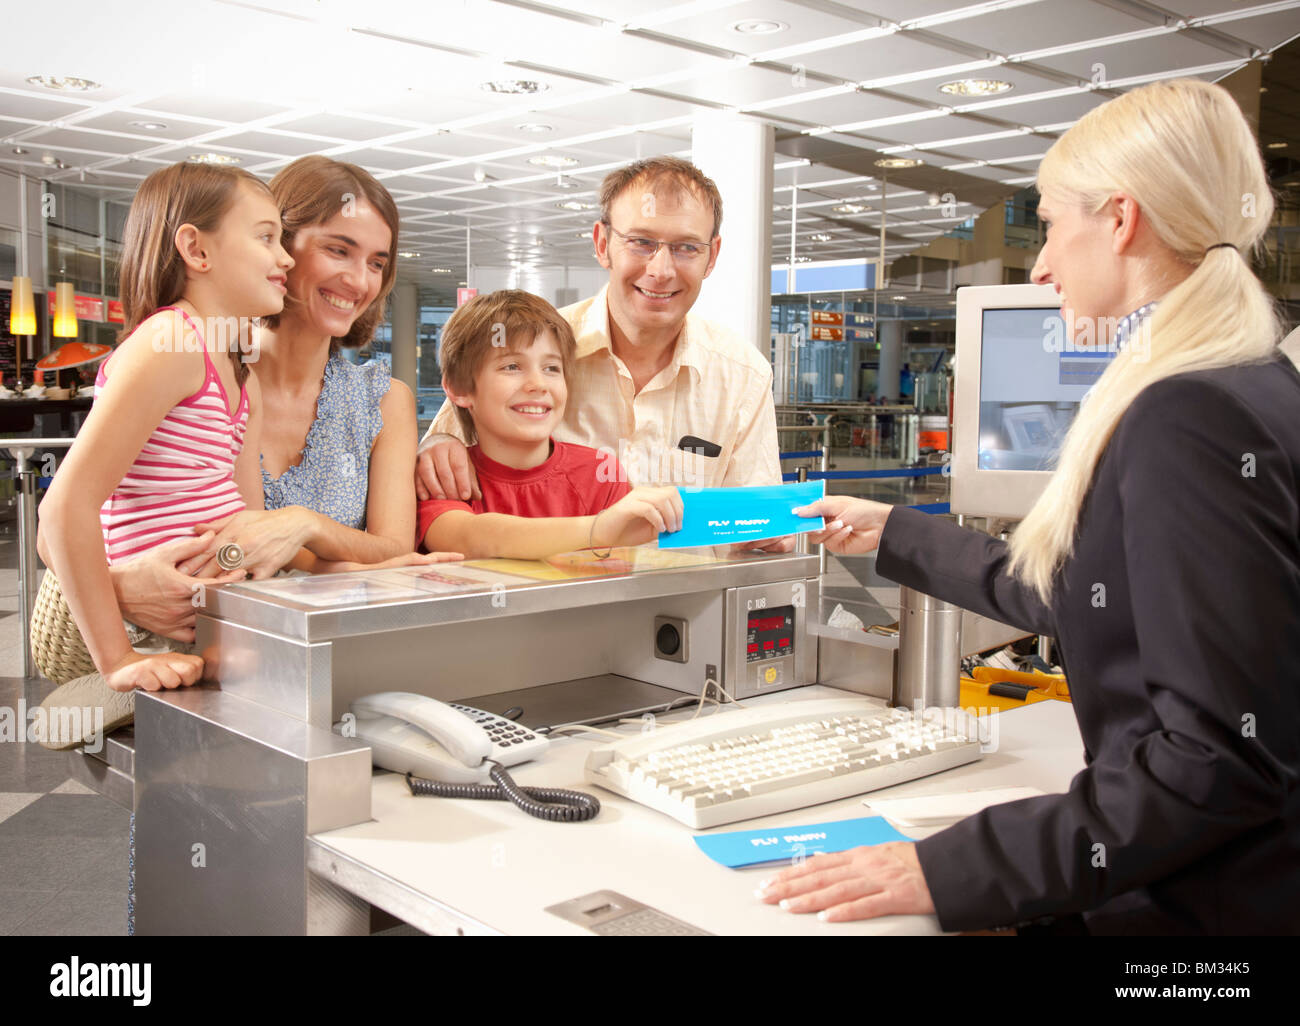 Family checking at the airport desk - Stock Image